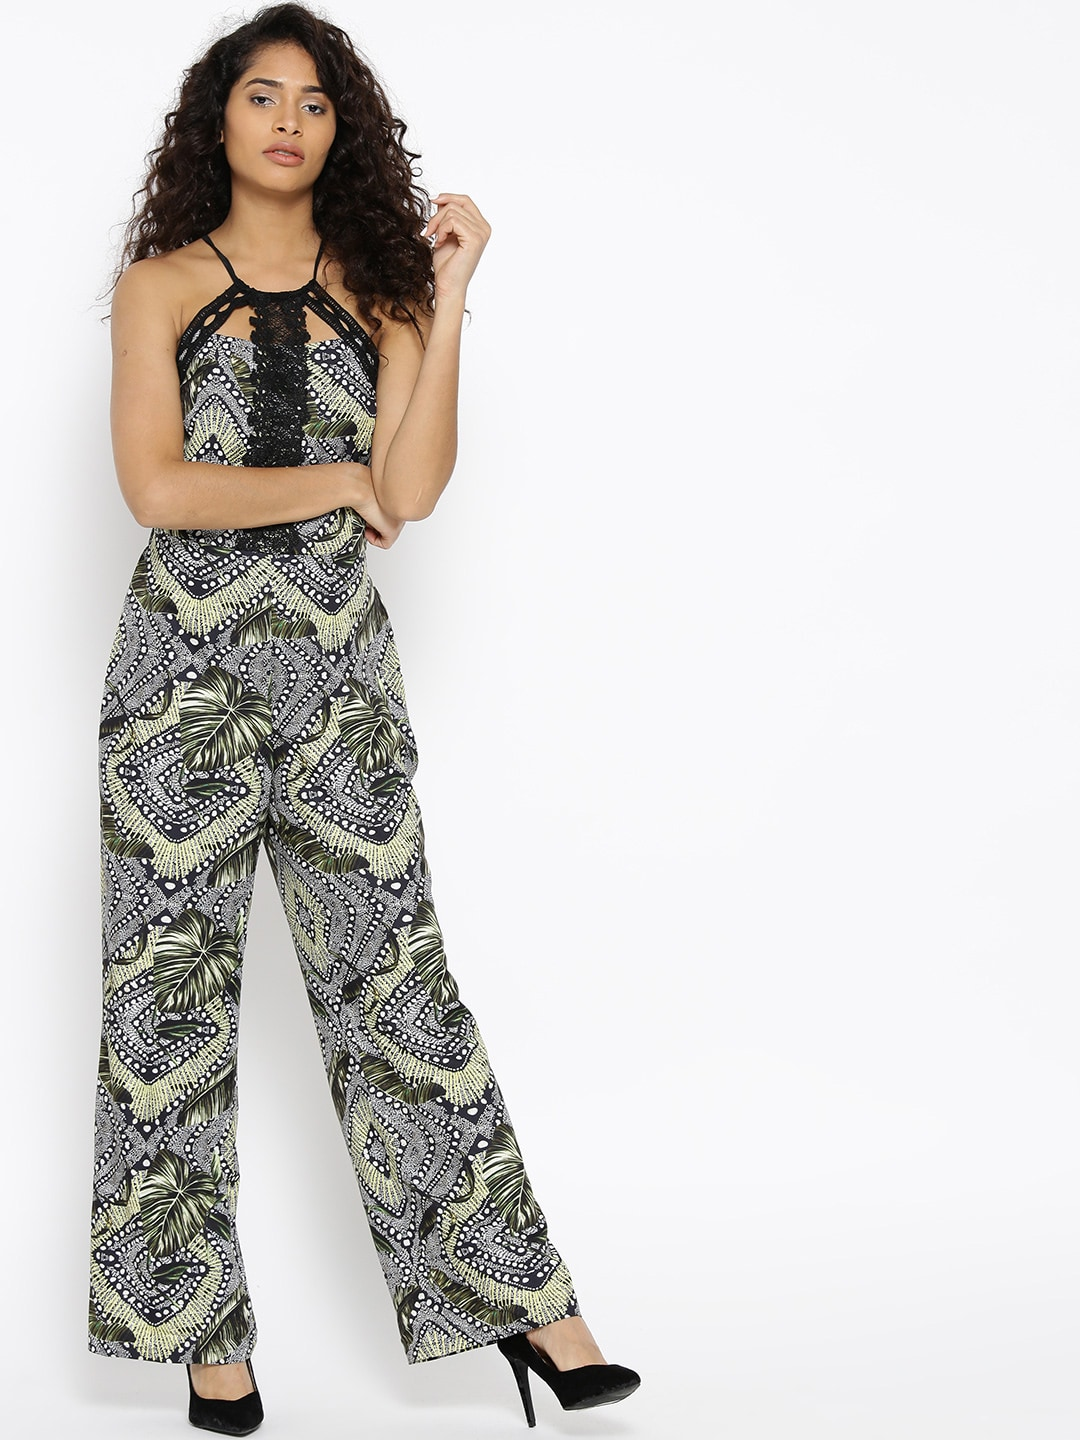 a97f8fa0f3a2 Black Jumpsuit - Buy Black Jumpsuit Online in India